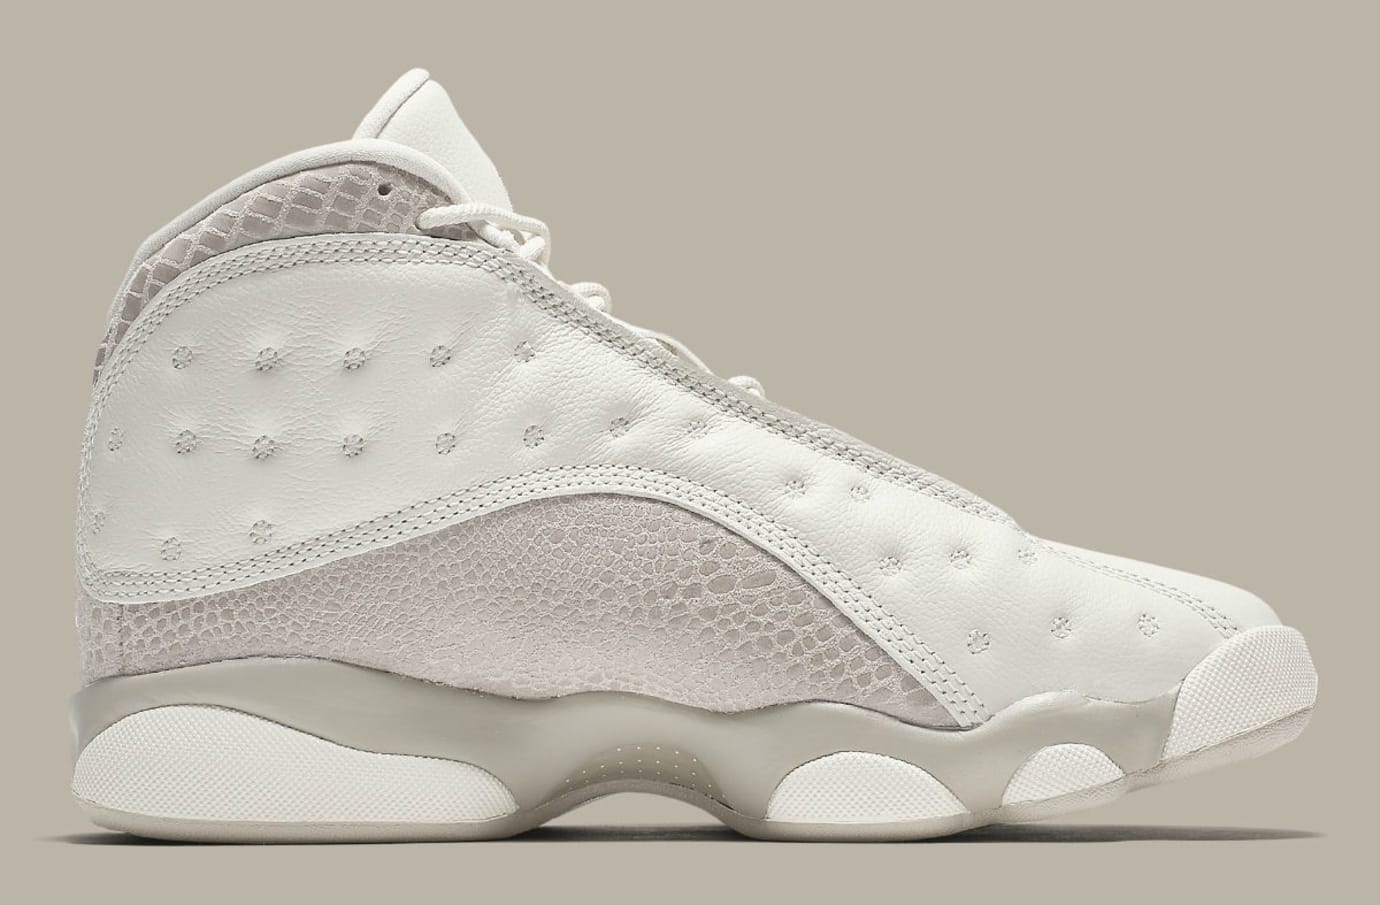 new product 271bf cd510 Image via Nike Air Jordan 13 XIII Women s Phantom Moon Particle Release  Date AQ1757-004 Medial